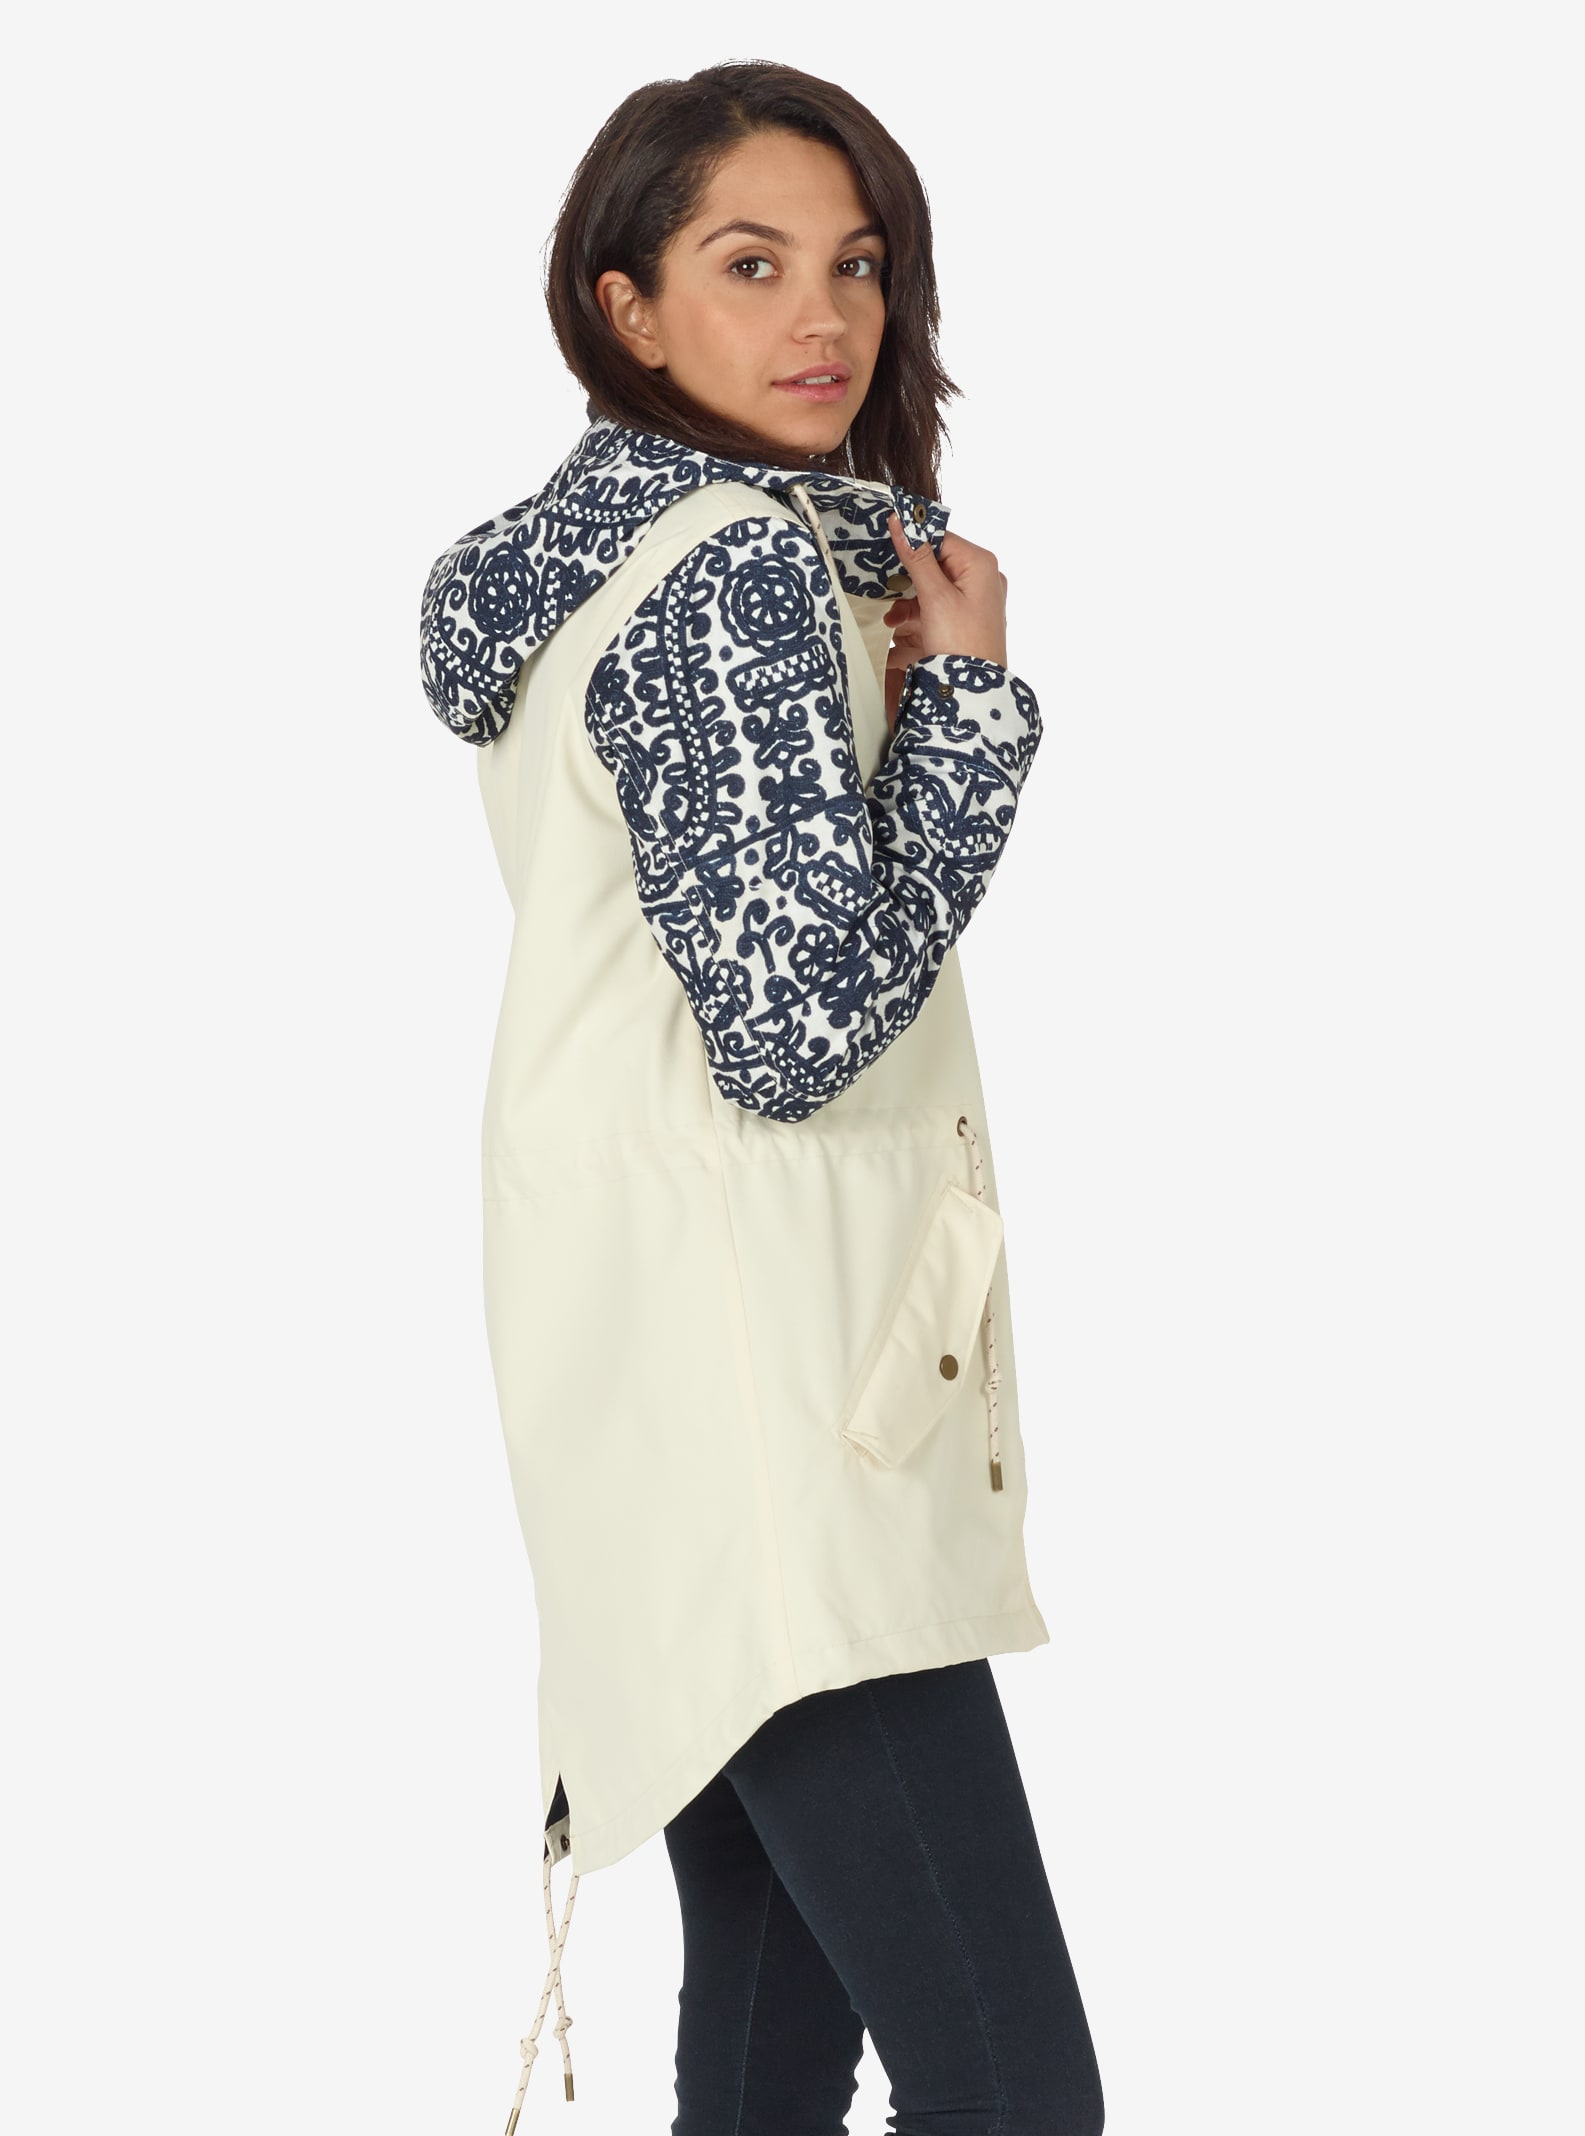 Women's Burton Sadie Jacket shown in Canvas / Mood Indigo Deftone